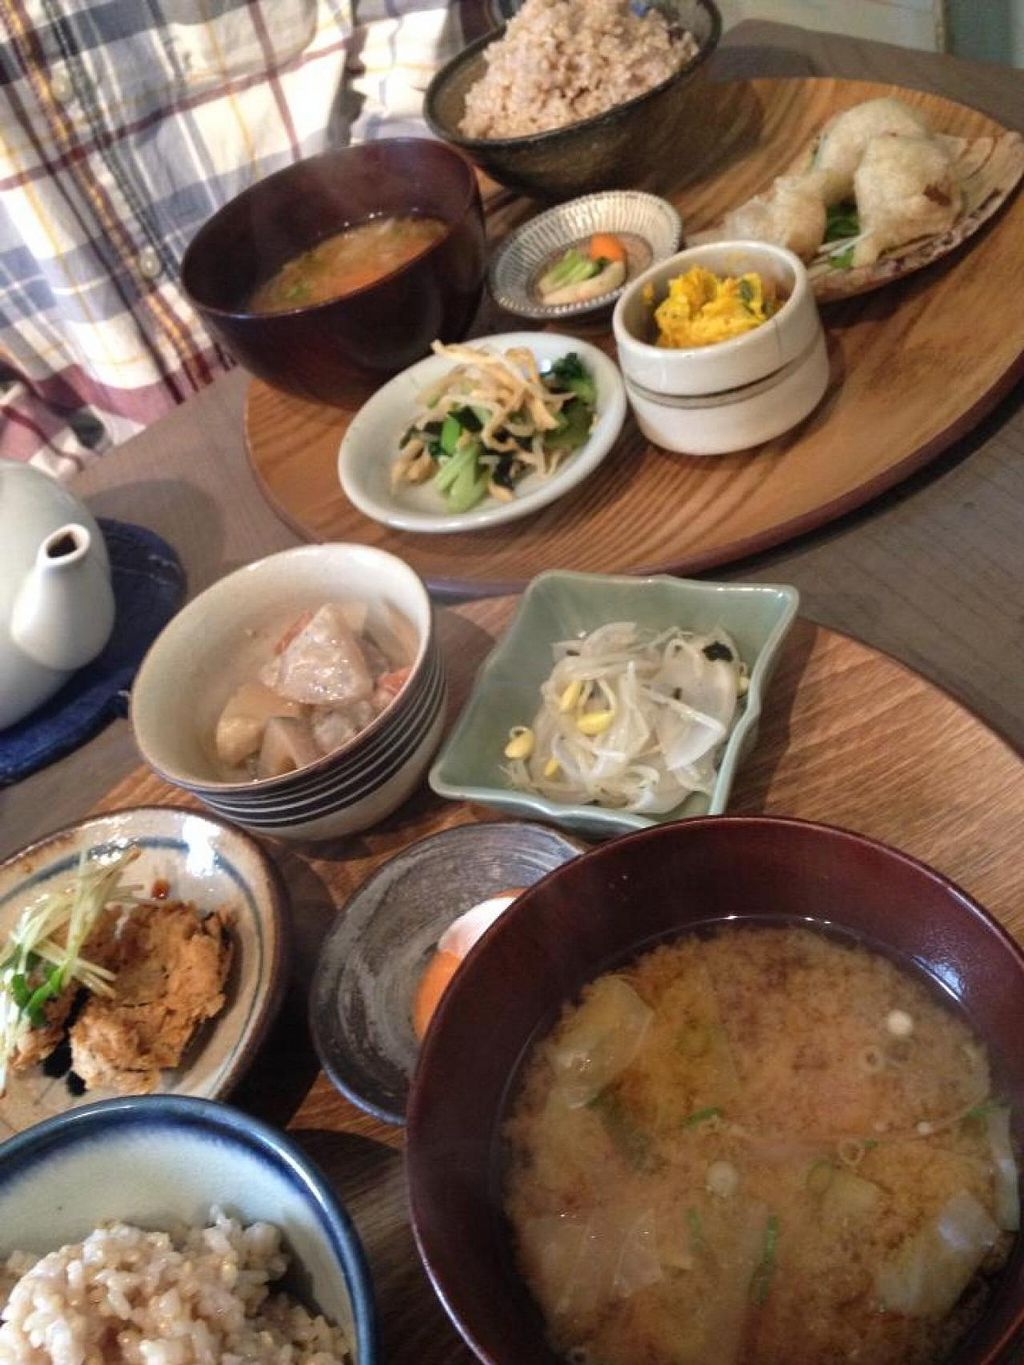 """Photo of CLOSED: Hitoto  by <a href=""""/members/profile/umebossy"""">umebossy</a> <br/>Hitoto lunch plates. There were 6 deli items to choose from so we had 3 each. Simple flavours, nice and filling <br/> March 8, 2014  - <a href='/contact/abuse/image/37199/65521'>Report</a>"""